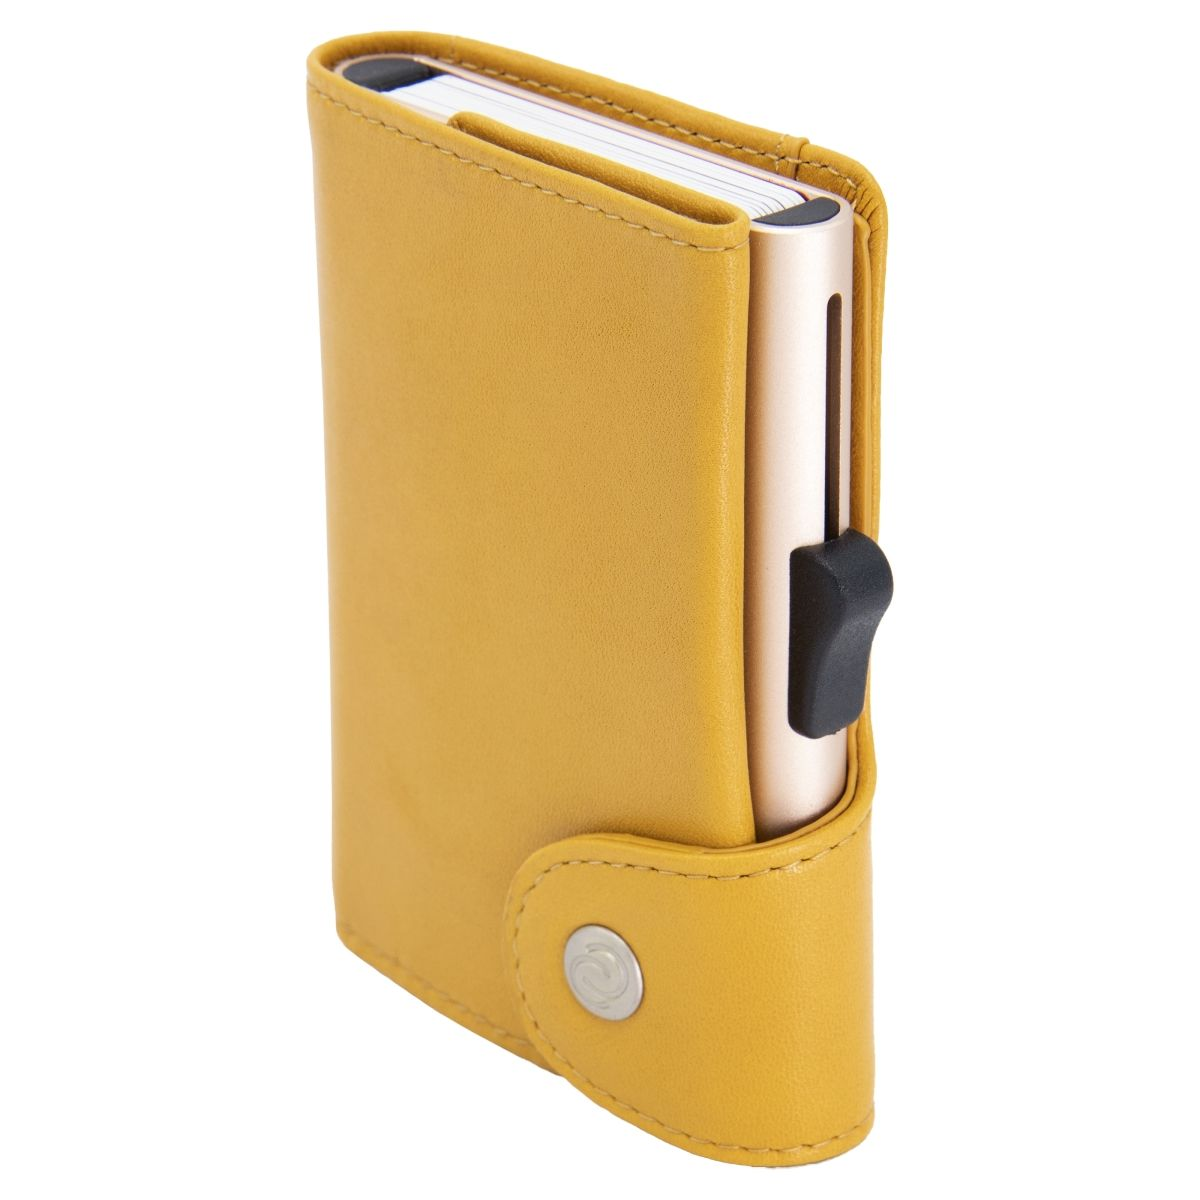 C-Secure XL Aluminum Wallet with Genuine Leather - Solis Yellow